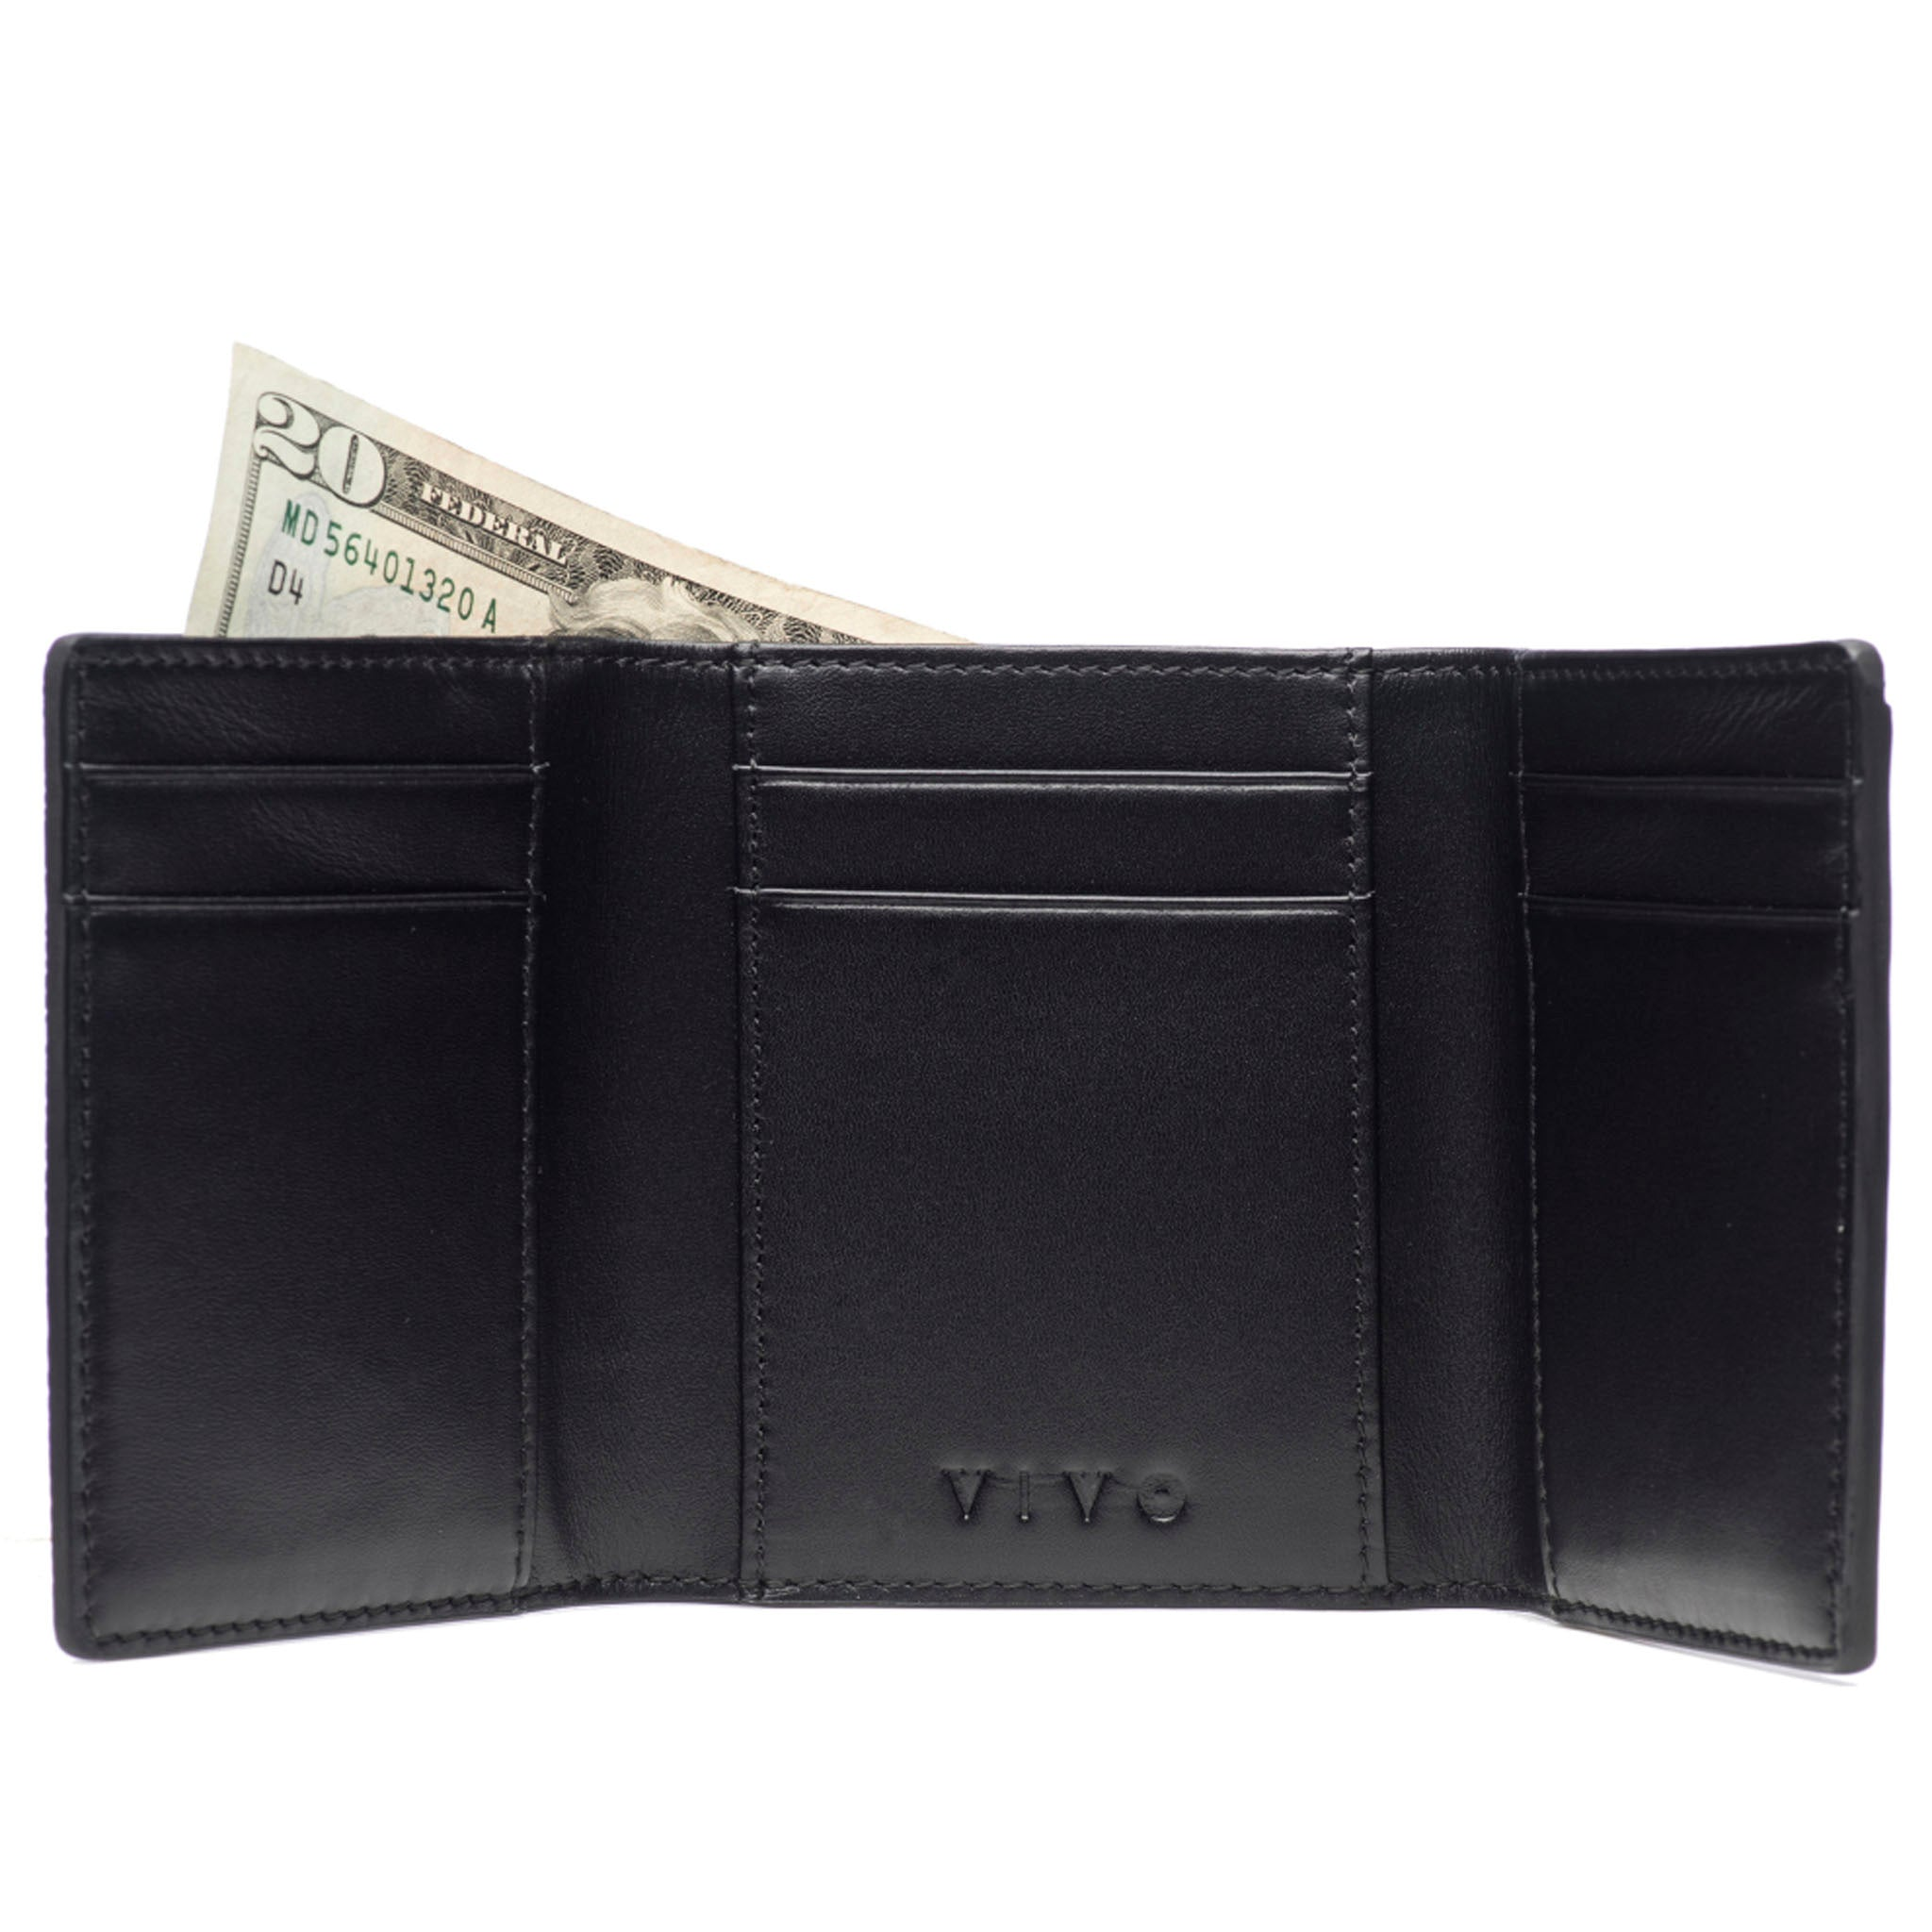 Black Shagreen Tri-Fold Wallet Leather Interior Open View Evan - Vivo Studios